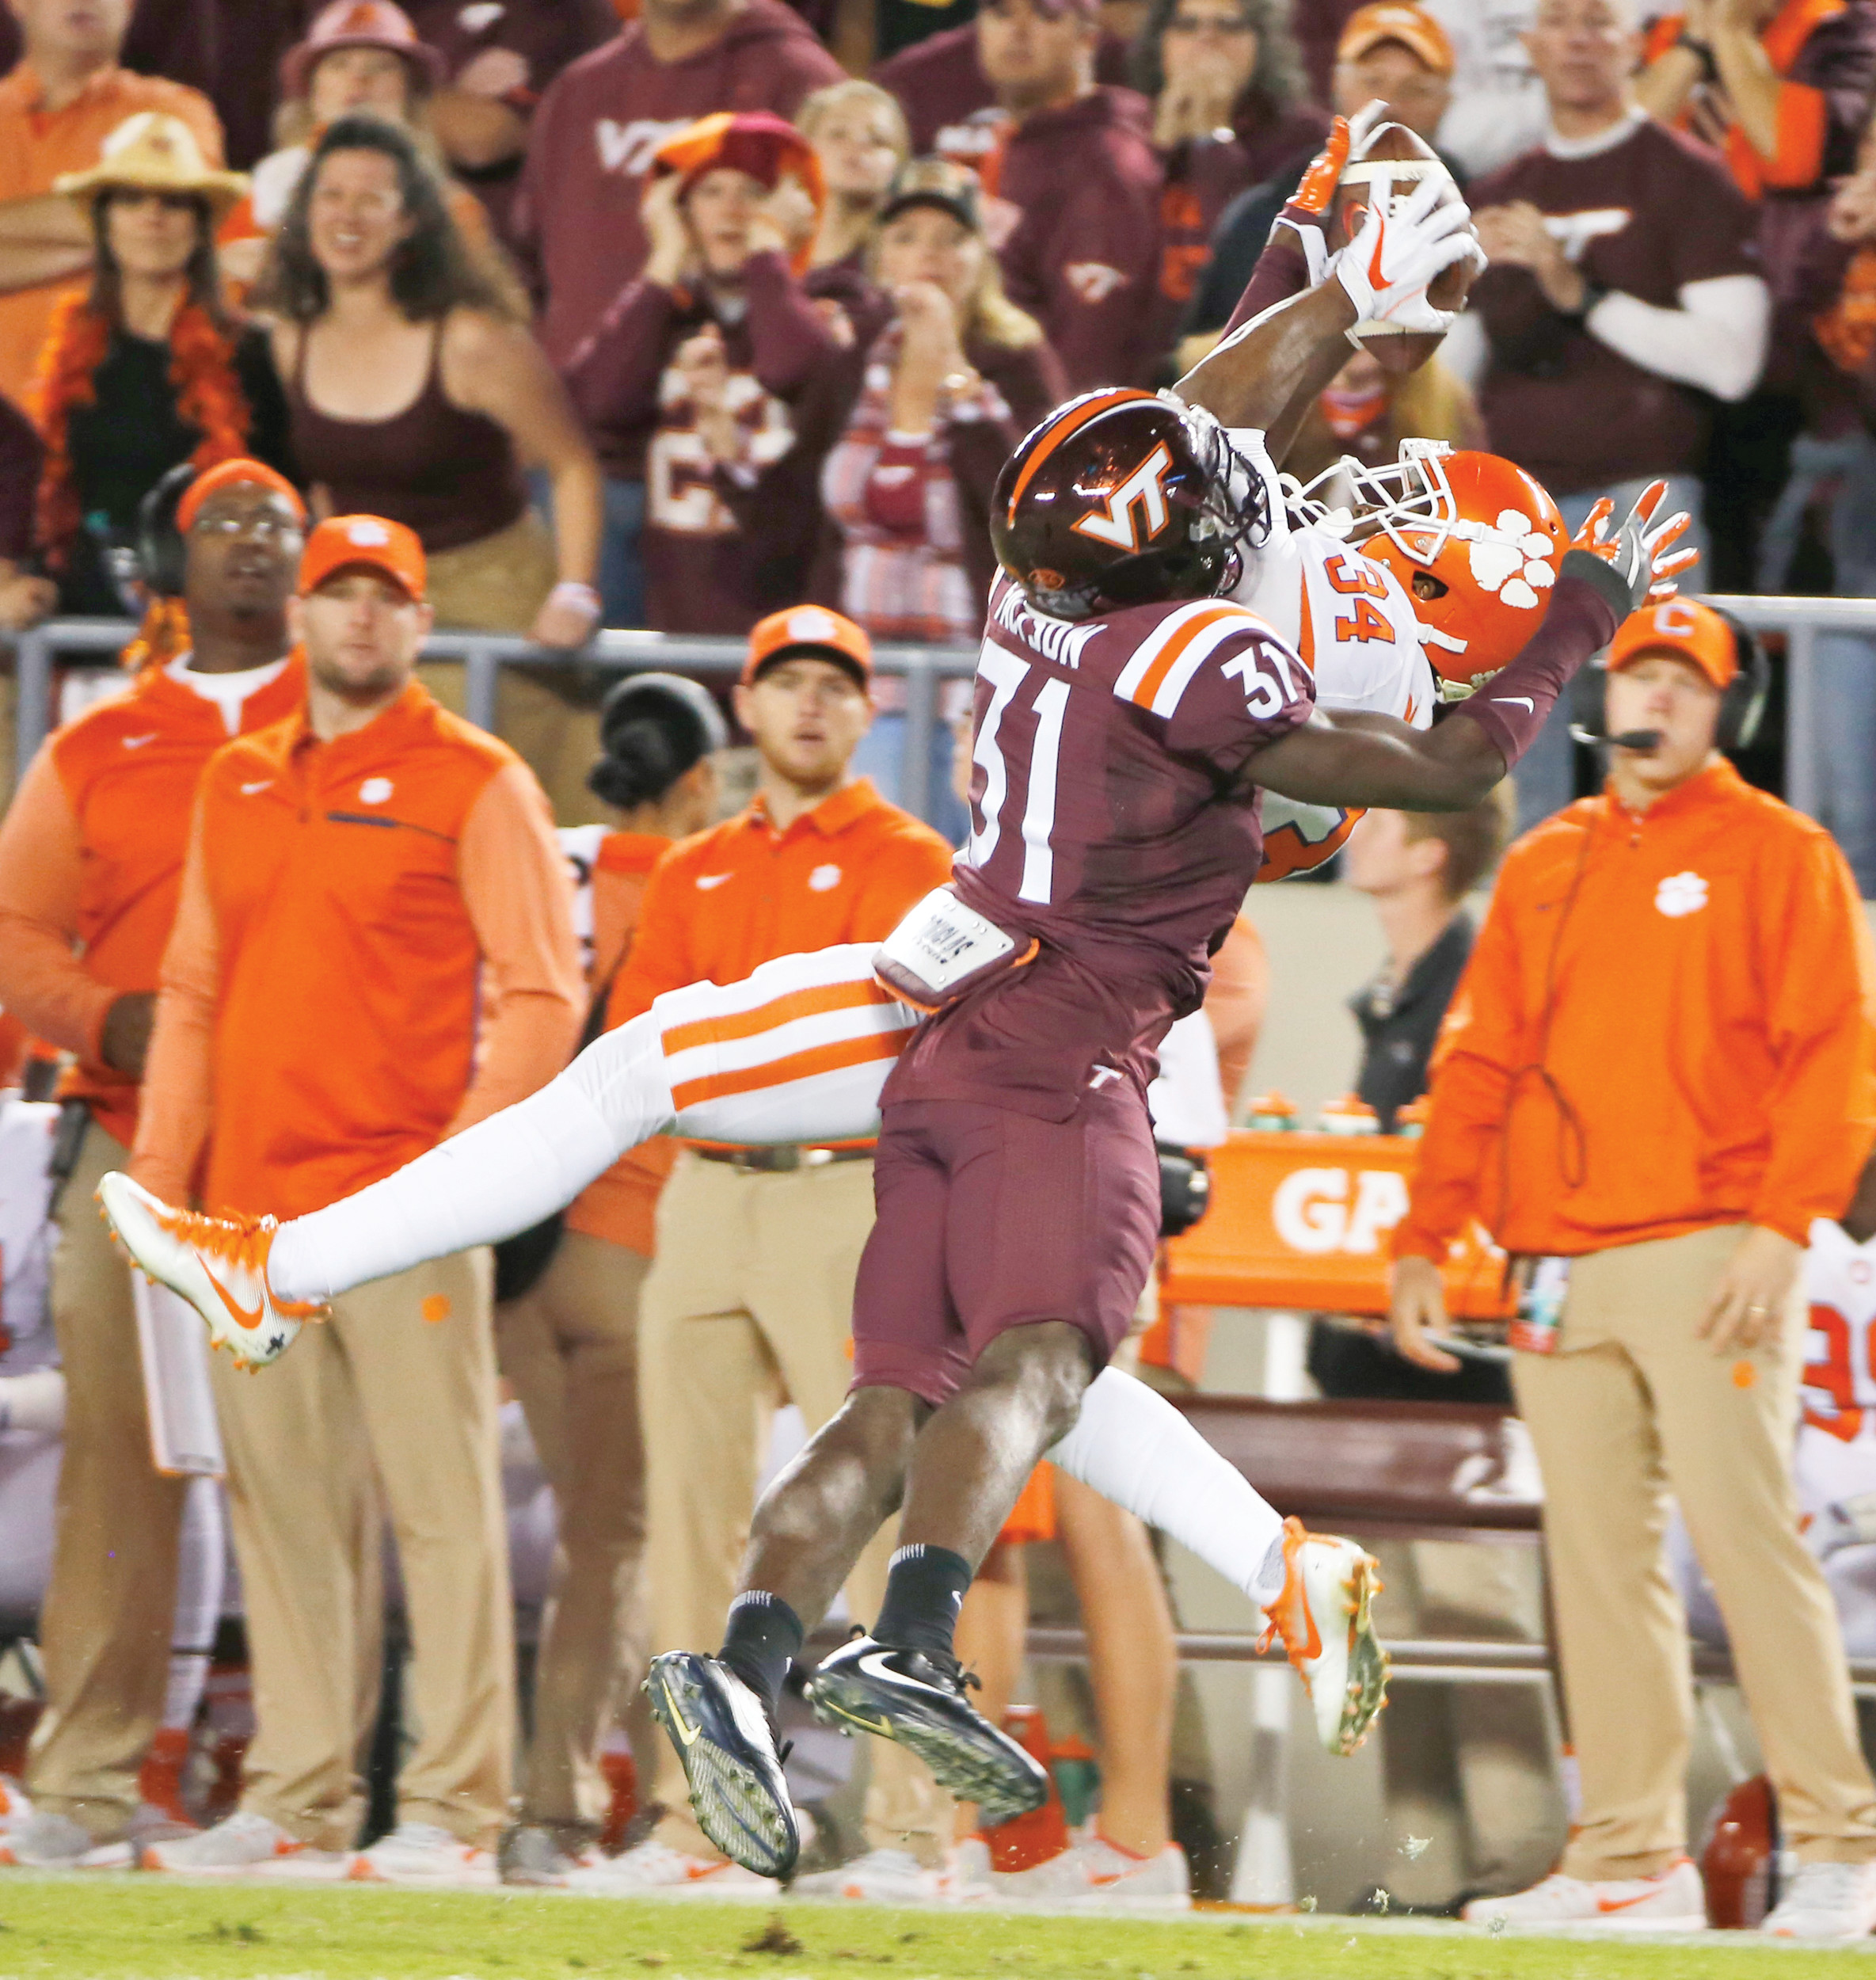 Clemson wide receiver Ray-Ray McCloud (34) grabs a pass as Virginia Tech cornerback Brandon Facyson (31) defends during the Tigers' 31-17 victory on Saturday in Blacksburg, Va.